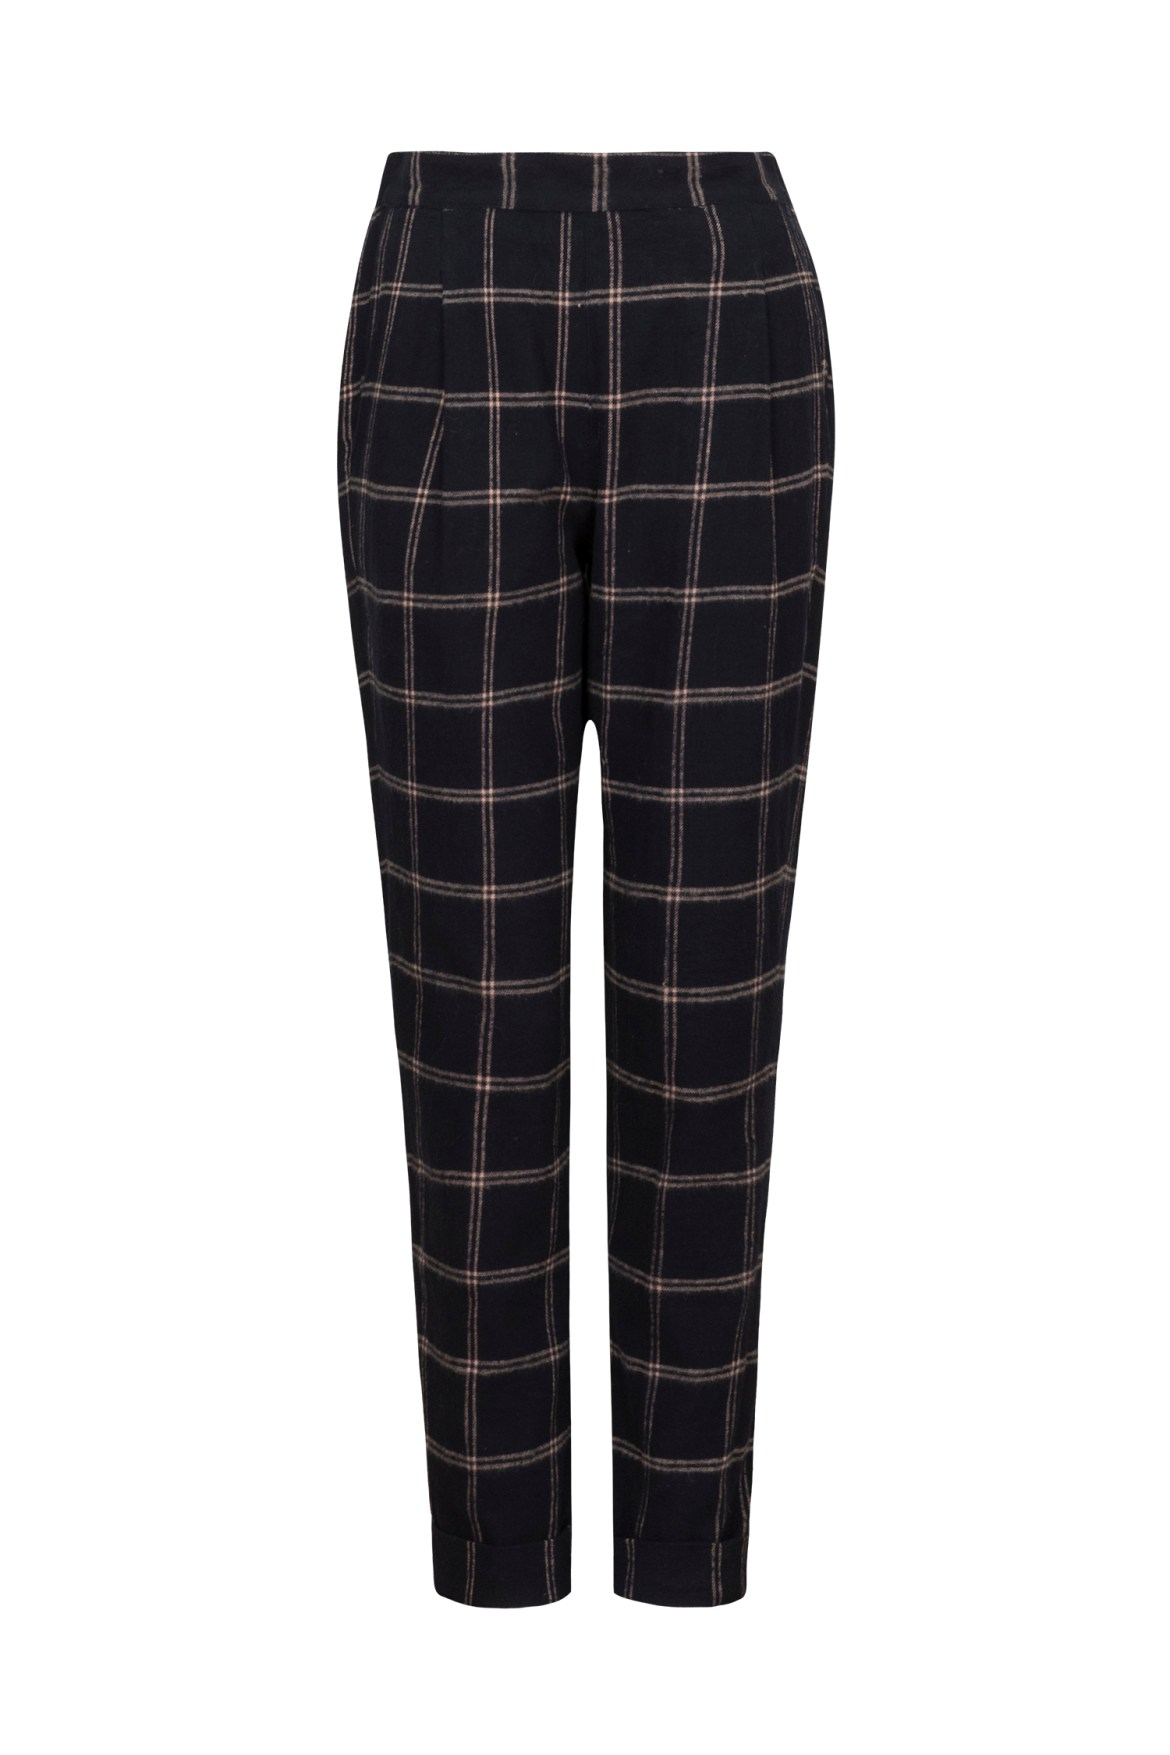 miriam-checked-trousers-in-navy-783d262e158f